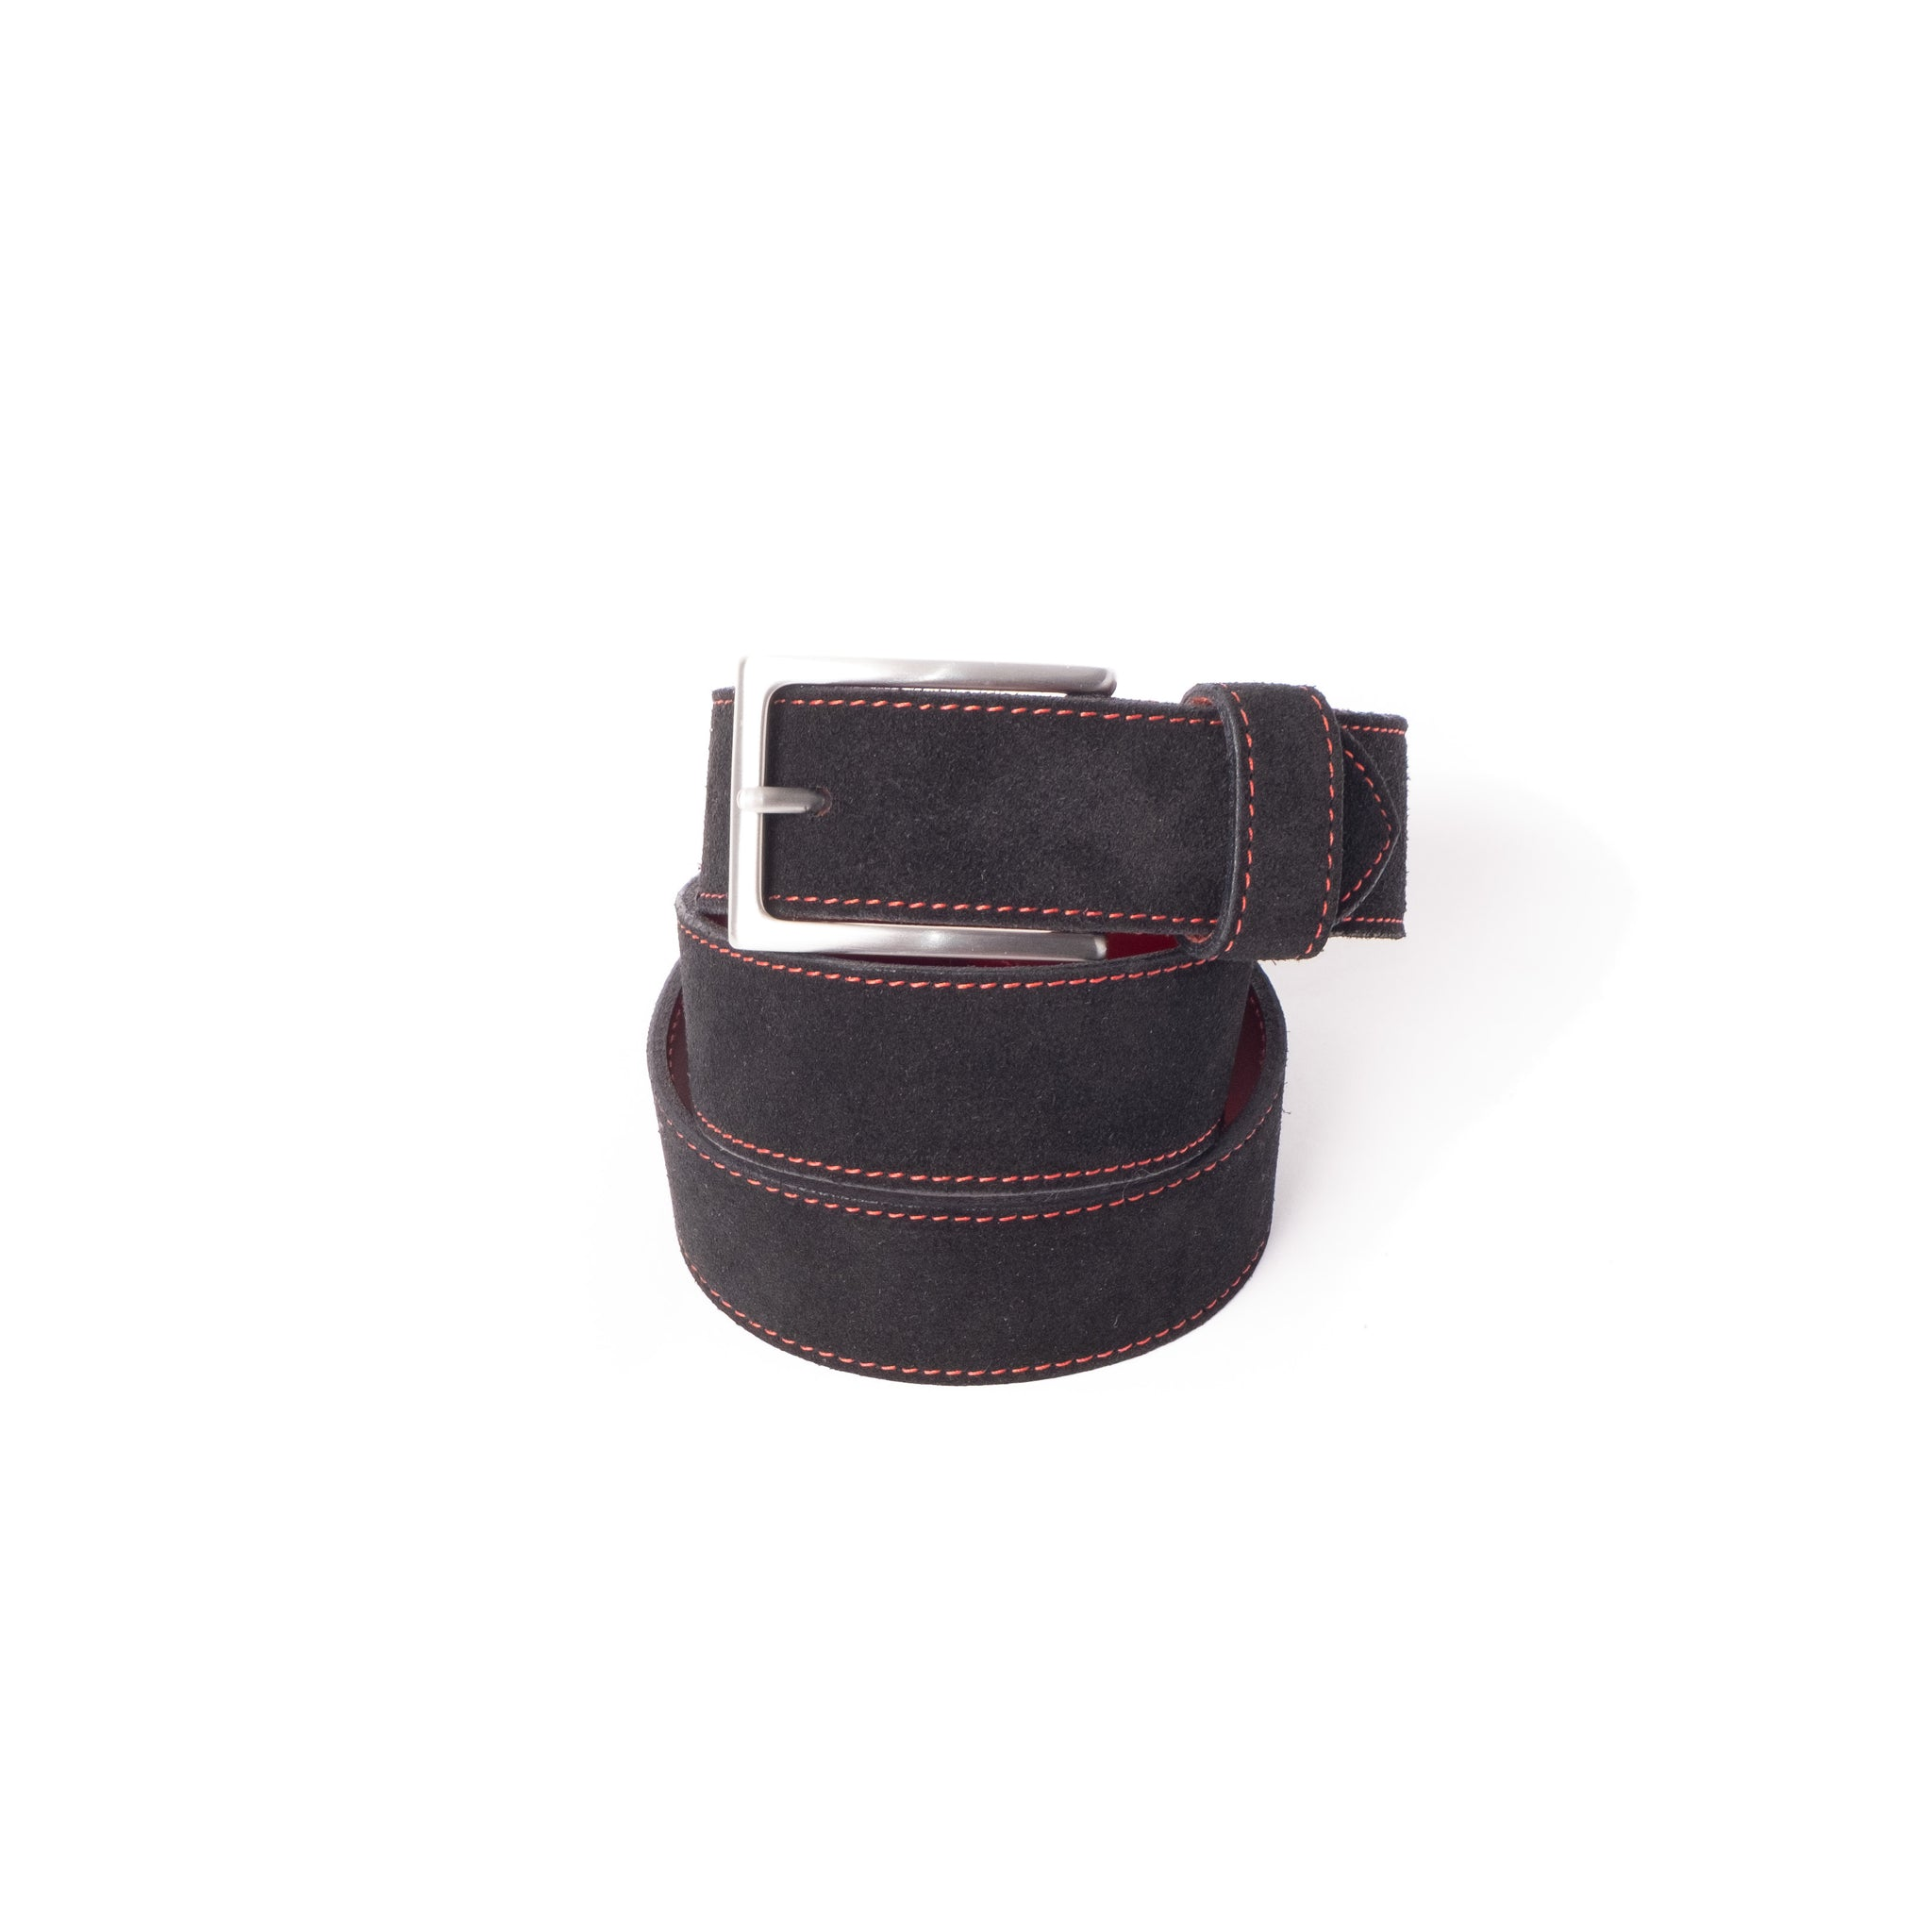 'Dirk' Jeans Belt - Black Suede